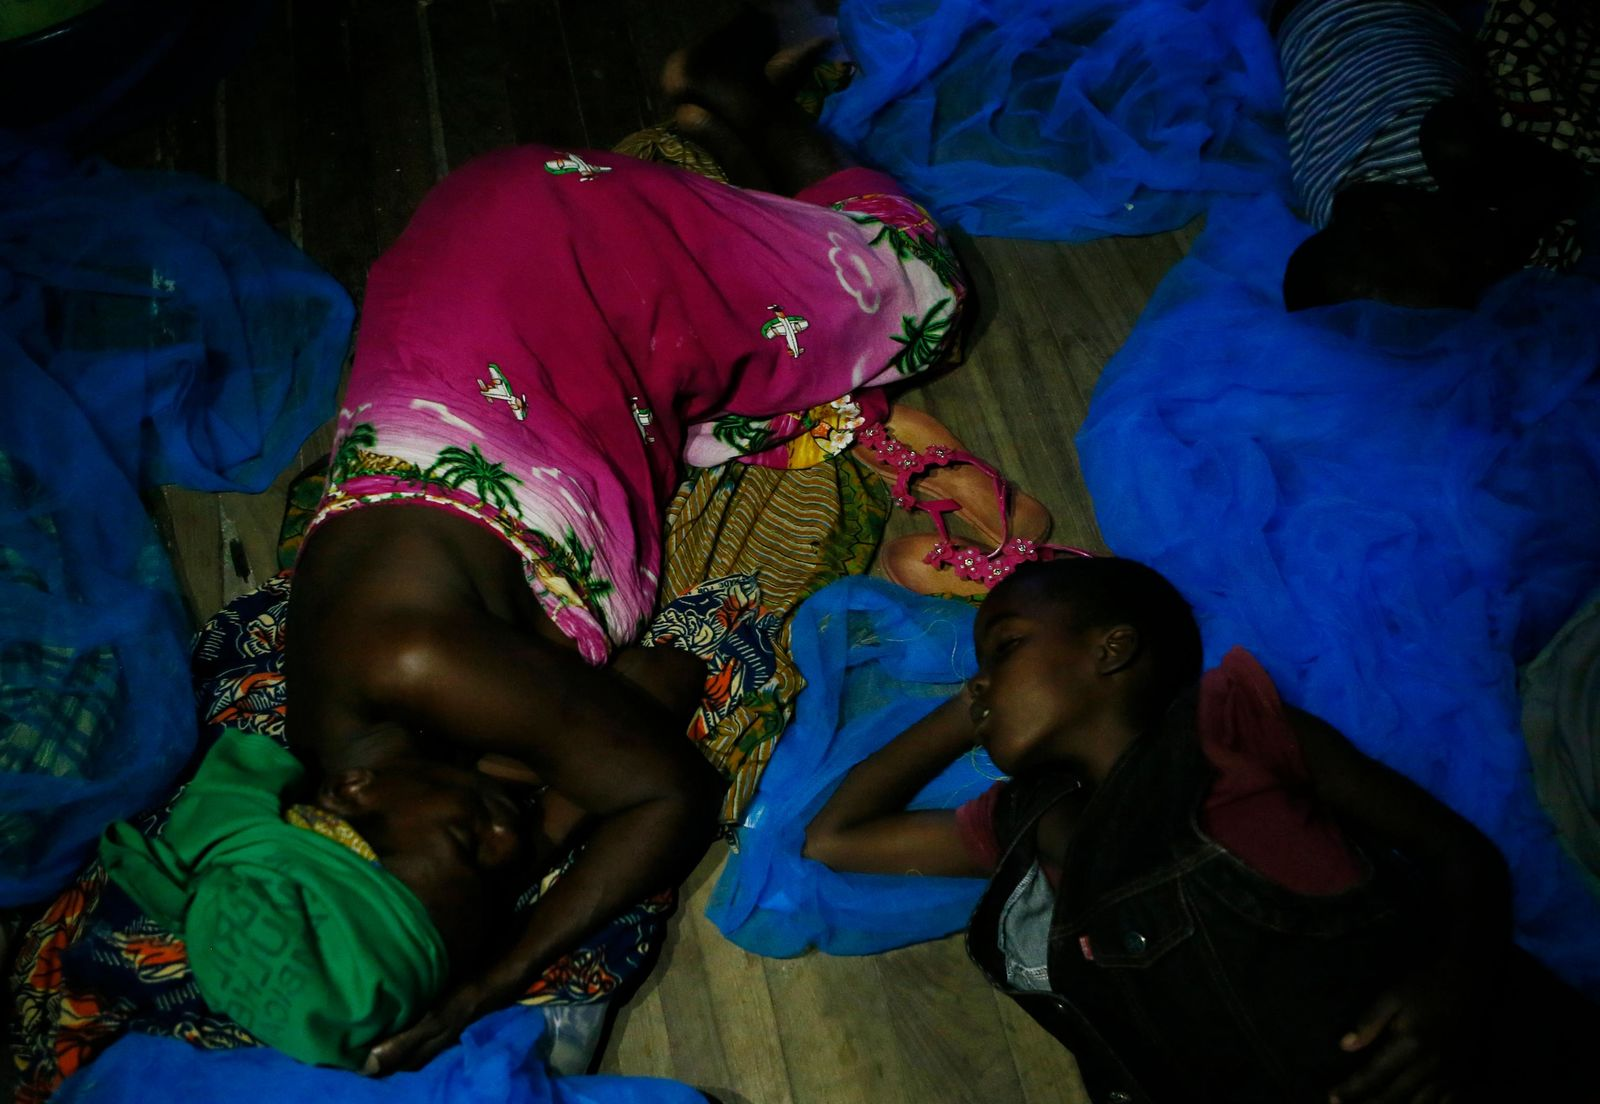 A displaced mother and child, victims of Cyclone Idai, sleep under a mosquito net at the Samora Machel Secondary School which is being used to house victims of the floods in Beira, Mozambique, Sunday March 24, 2019. (AP Photo/Phill Magakoe)